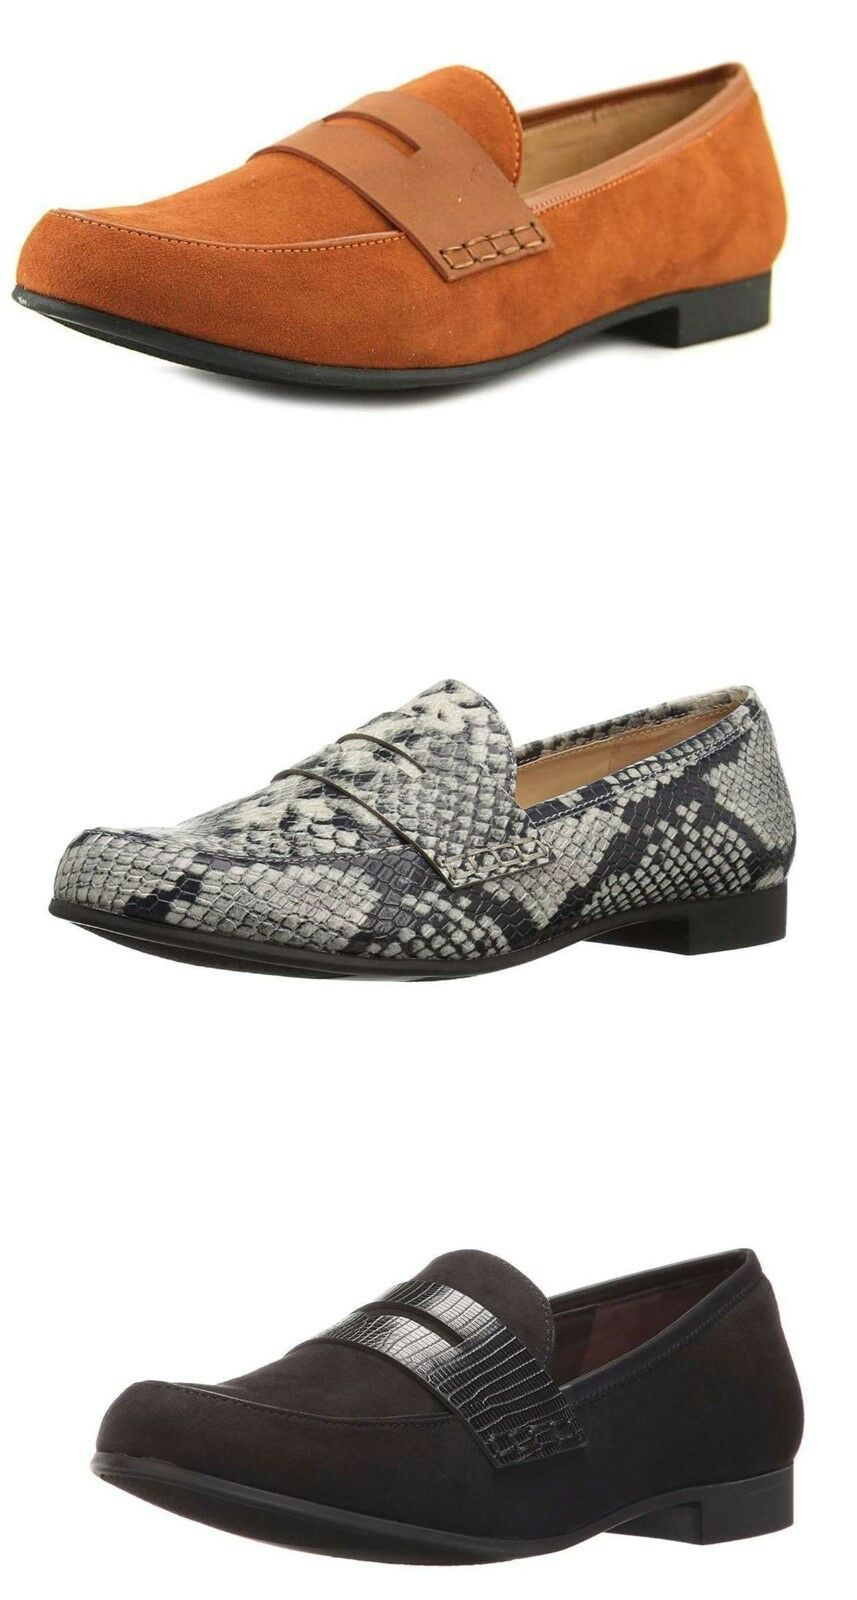 ec6388165bb5 Circus Women s Sam Edelman Tanner Penny Loafers Classic shoes New Slip-On  Flat ngerpy26-Women s Comfort Shoes